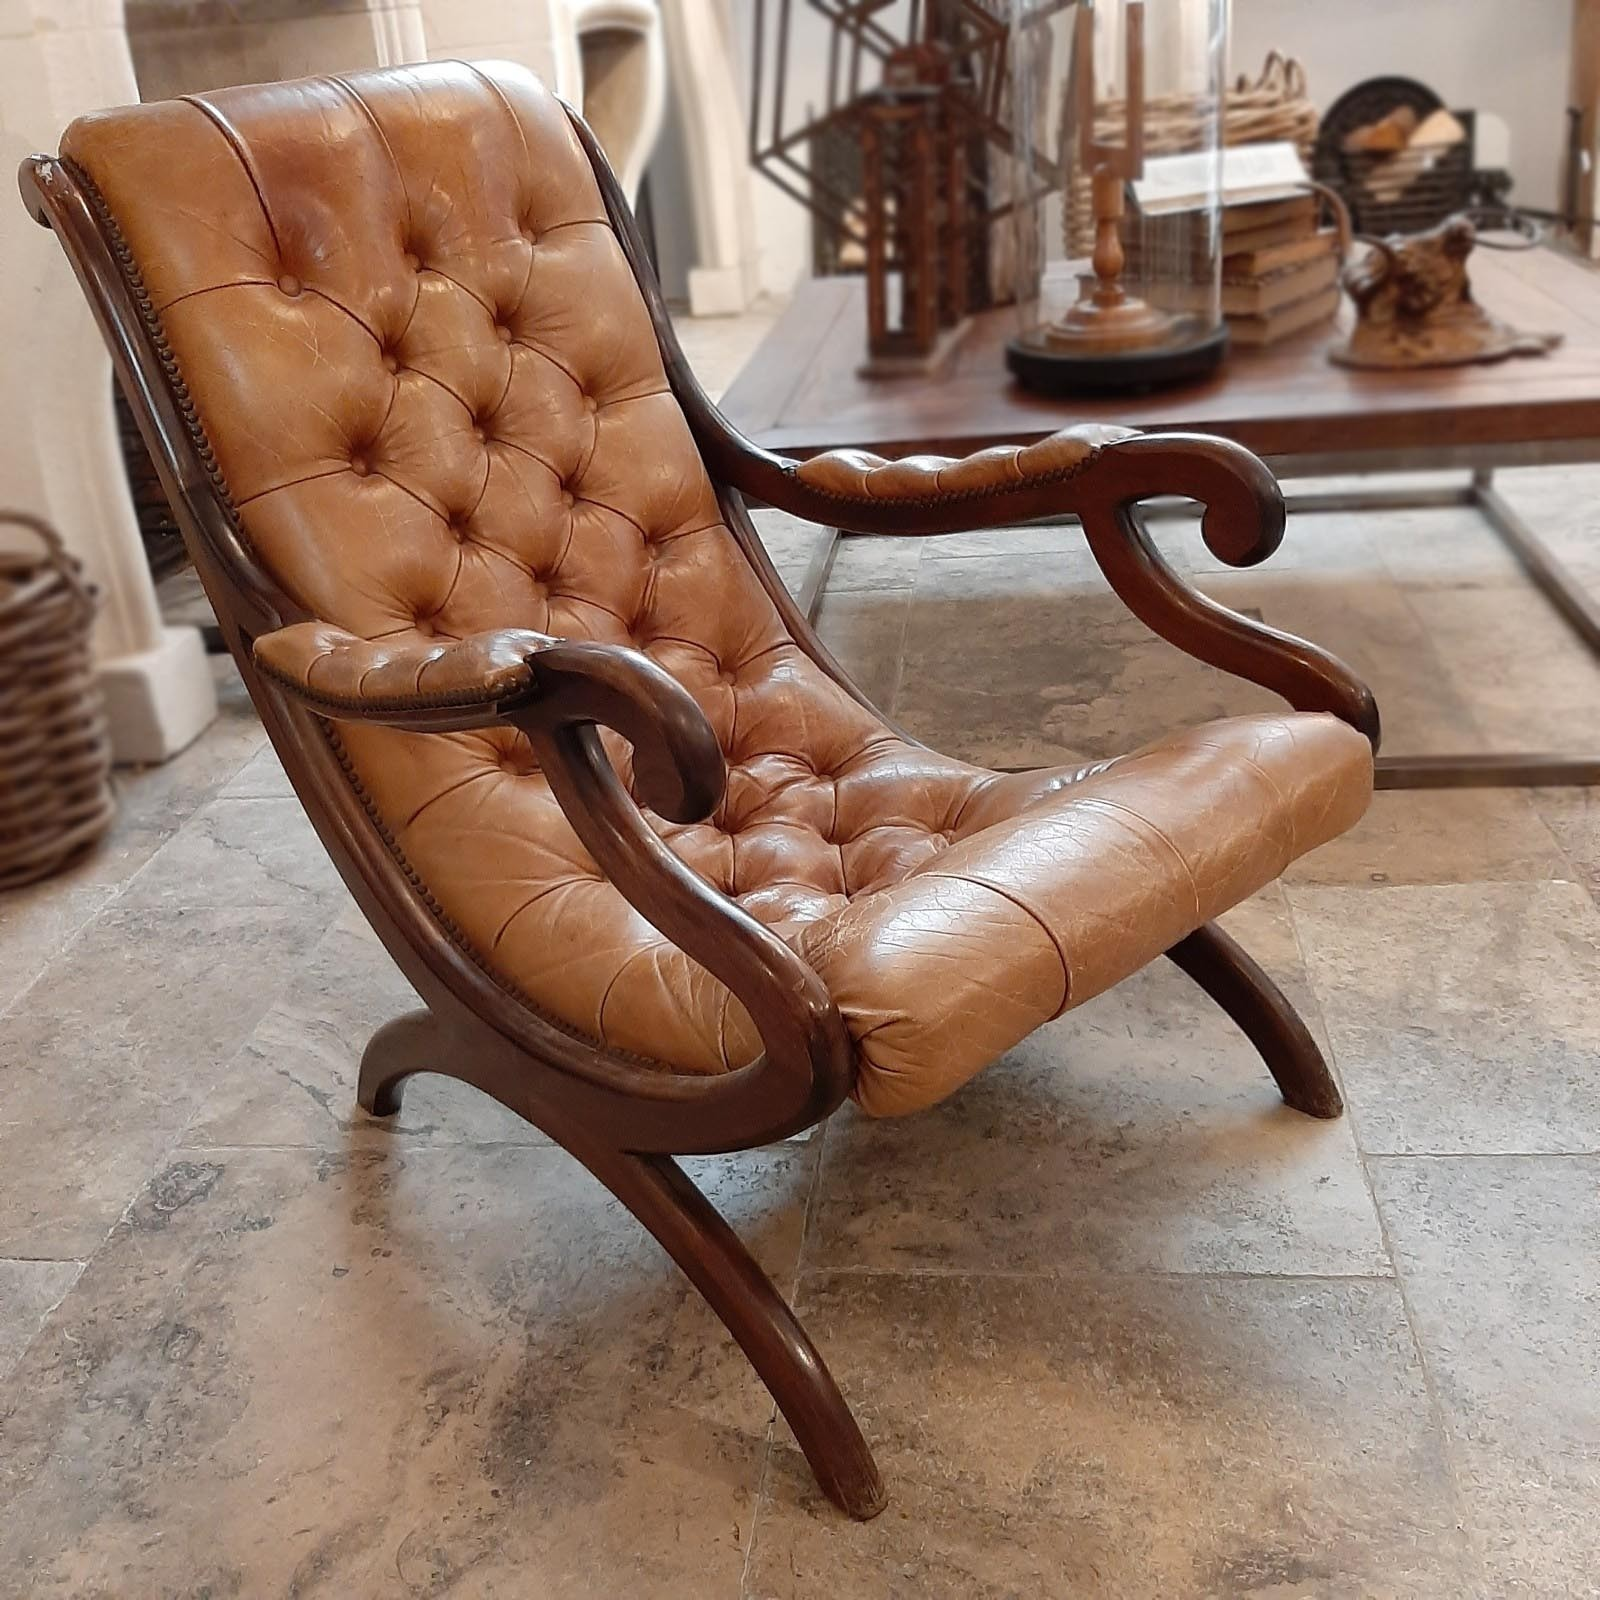 Alter englischer Chesterfield-Lehnsessel